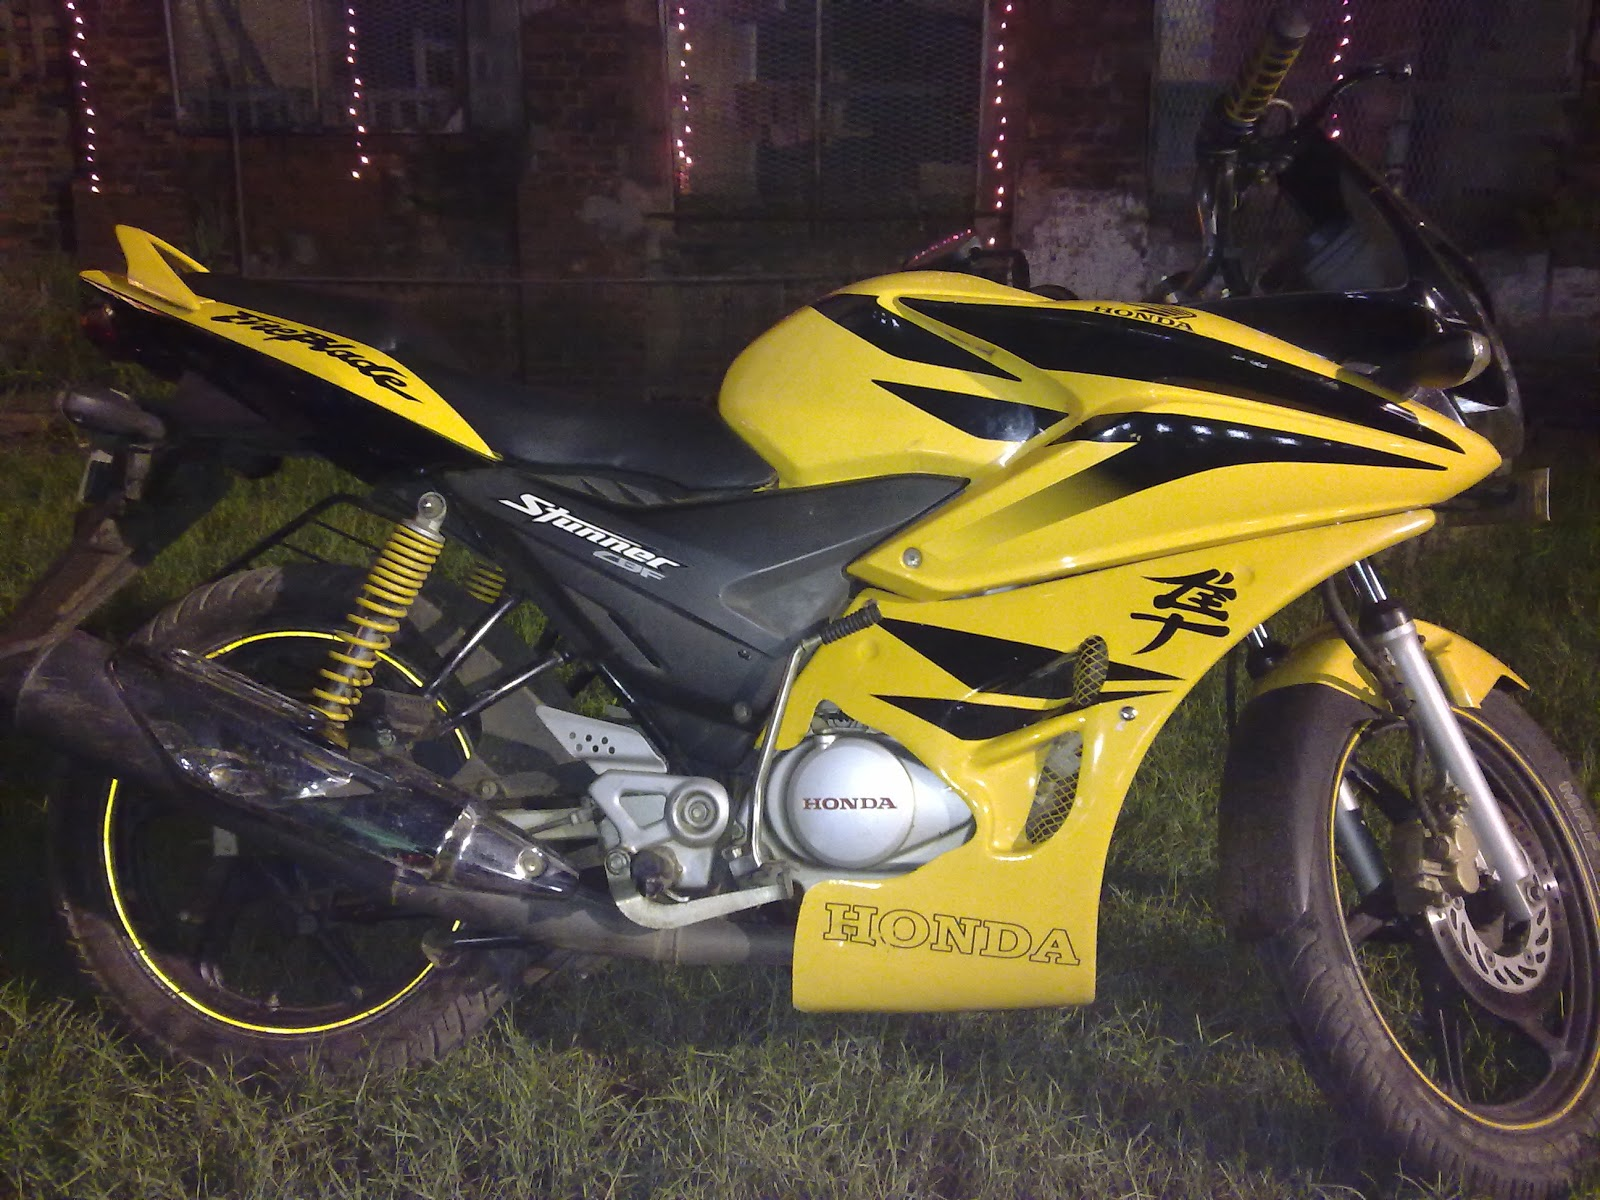 My modified yellow honda stunner cbf 125 kick start+self start with disc brakes